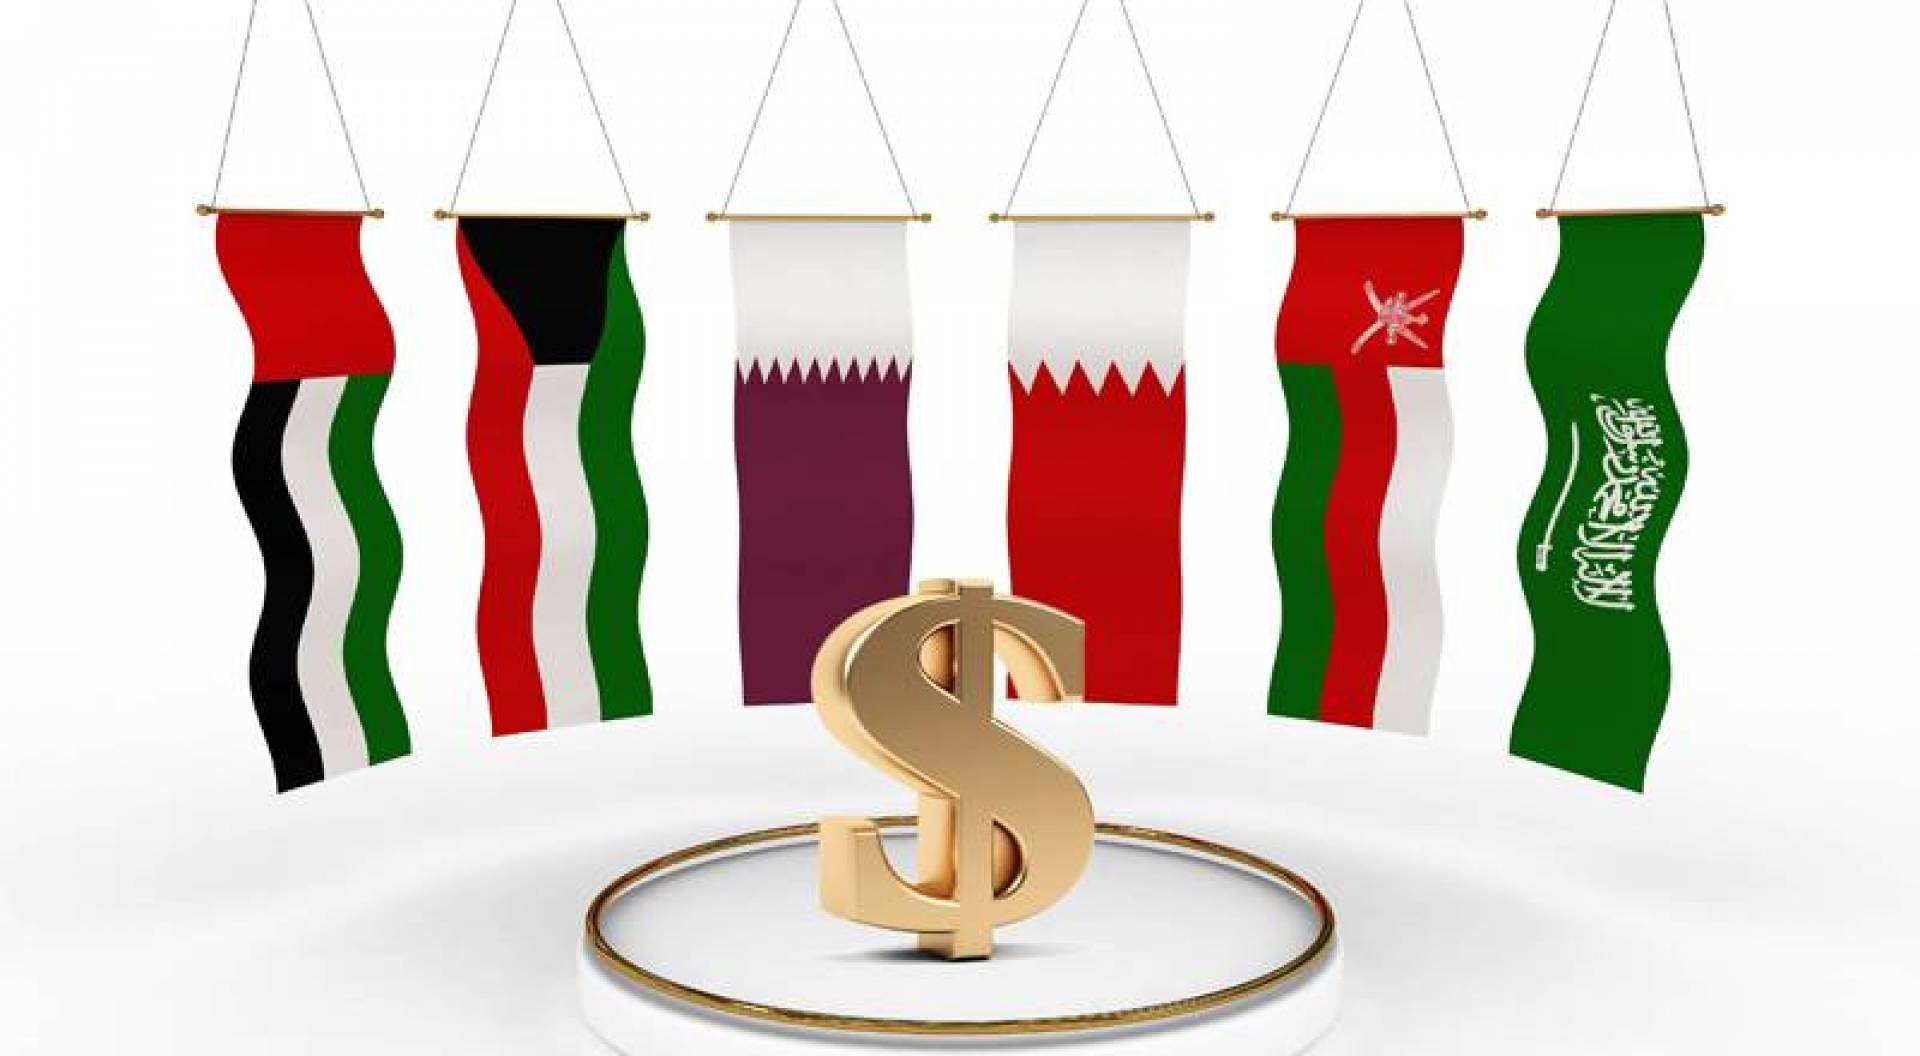 """""""BLOOMBERG"""": A DIFFICULT TEST FACING THE LINKING OF GULF CURRENCIES TO THE DOLLAR! %C2%AB%D8%A8%D9%84%D9%88%D9%85%D8%A8%D9%8A%D8%B1%D8%BA%C2%BB-%D8%A7%D8%AE%D8%AA%D8%A8%D8%A7%D8%B1-%D8%B5%D8%B9%D8%A8-%D9%8A%D9%88%D8%A7%D8%AC%D9%87-%D8%B1%D8%A8%D8%B7-%D8%A7%D9%84%D8%B9%D9%85%D9%84%D8%A7%D8%AA-%D8%A7%D9%84%D8%AE%D9%84%D9%8A%D8%AC%D9%8A%D8%A9-%D8%A8%D8%A7%D9%84%D8%AF%D9%88%D9%84%D8%A7%D8%B1"""